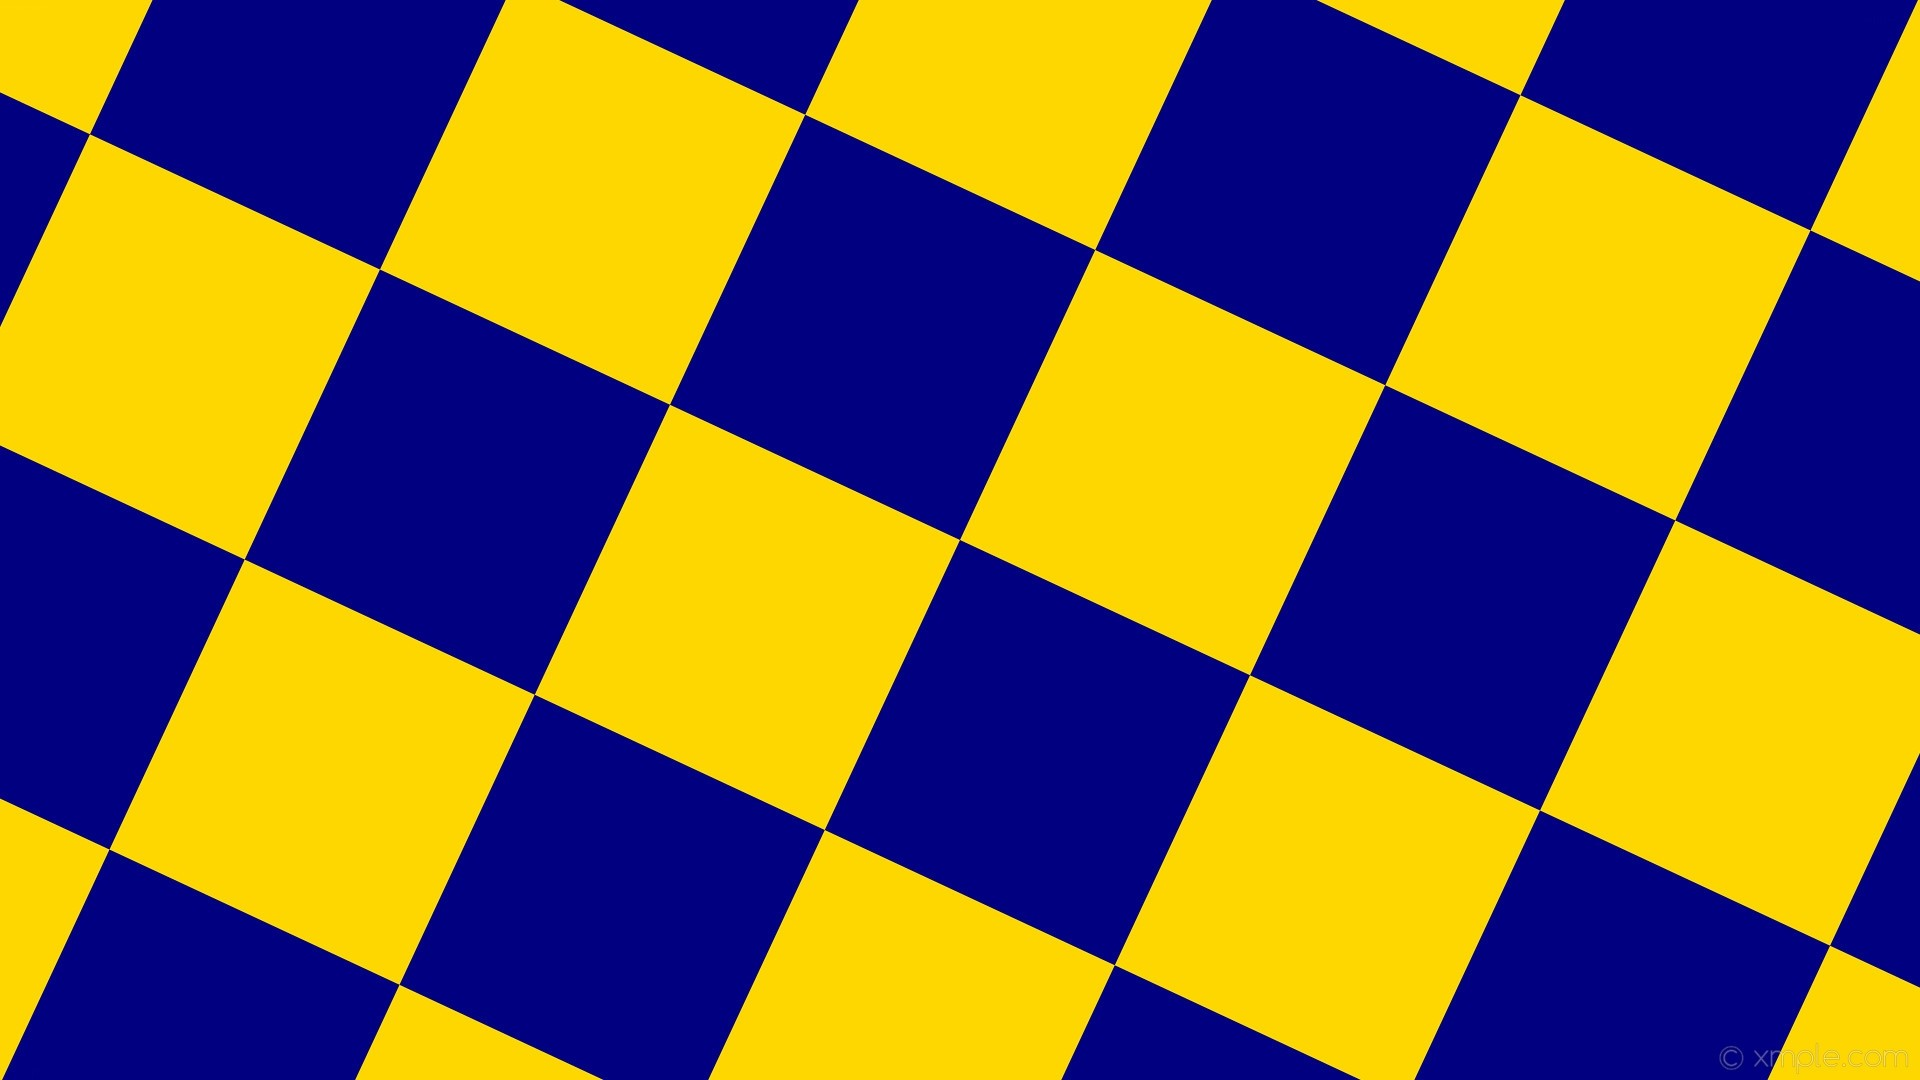 Blue And Yellow Wallpaper theme